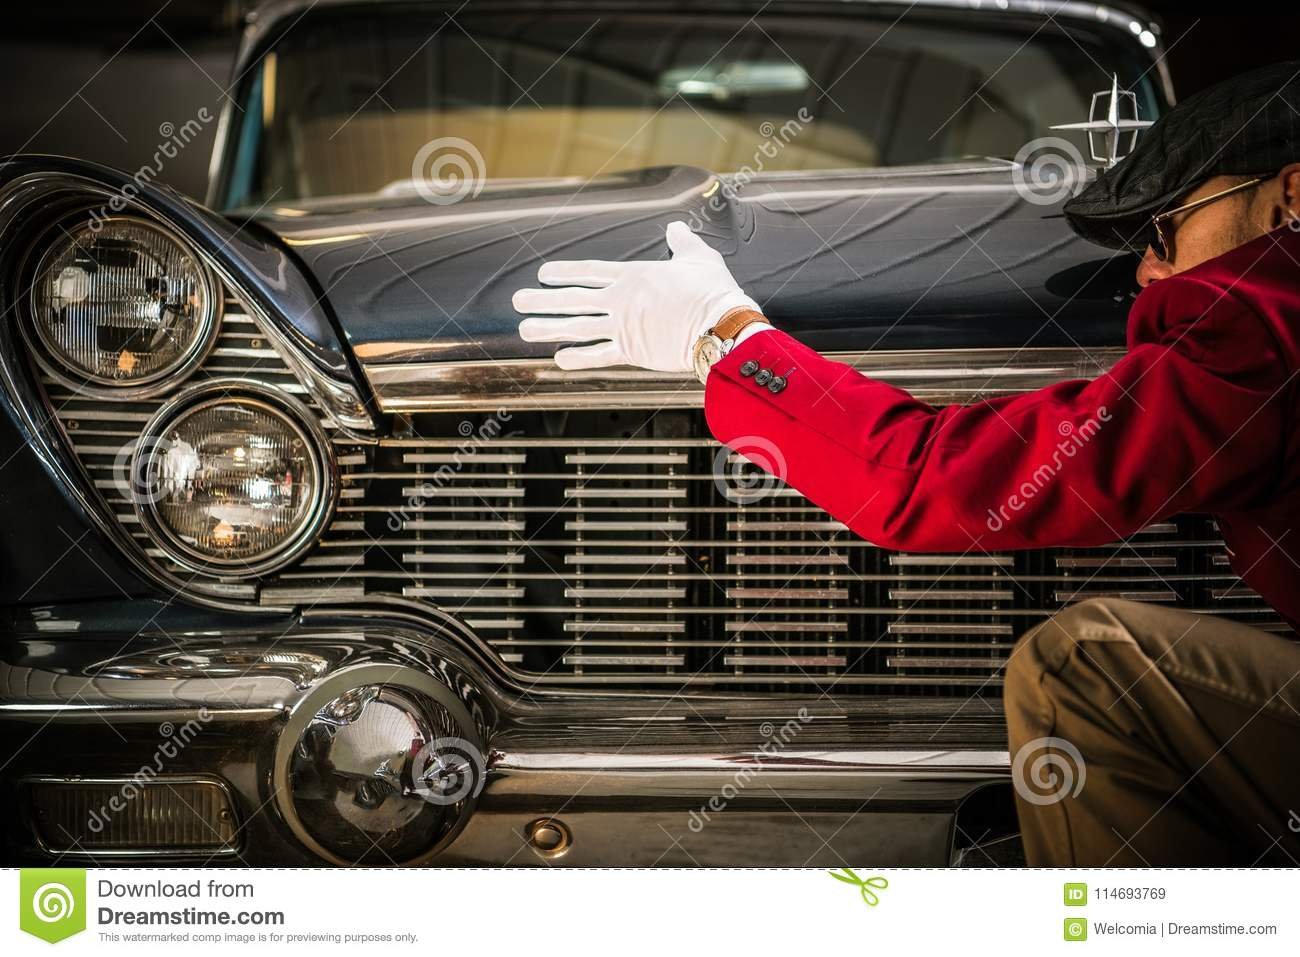 Classic Car Appraisal stock image. Image of hobby, vehicle - 114693769